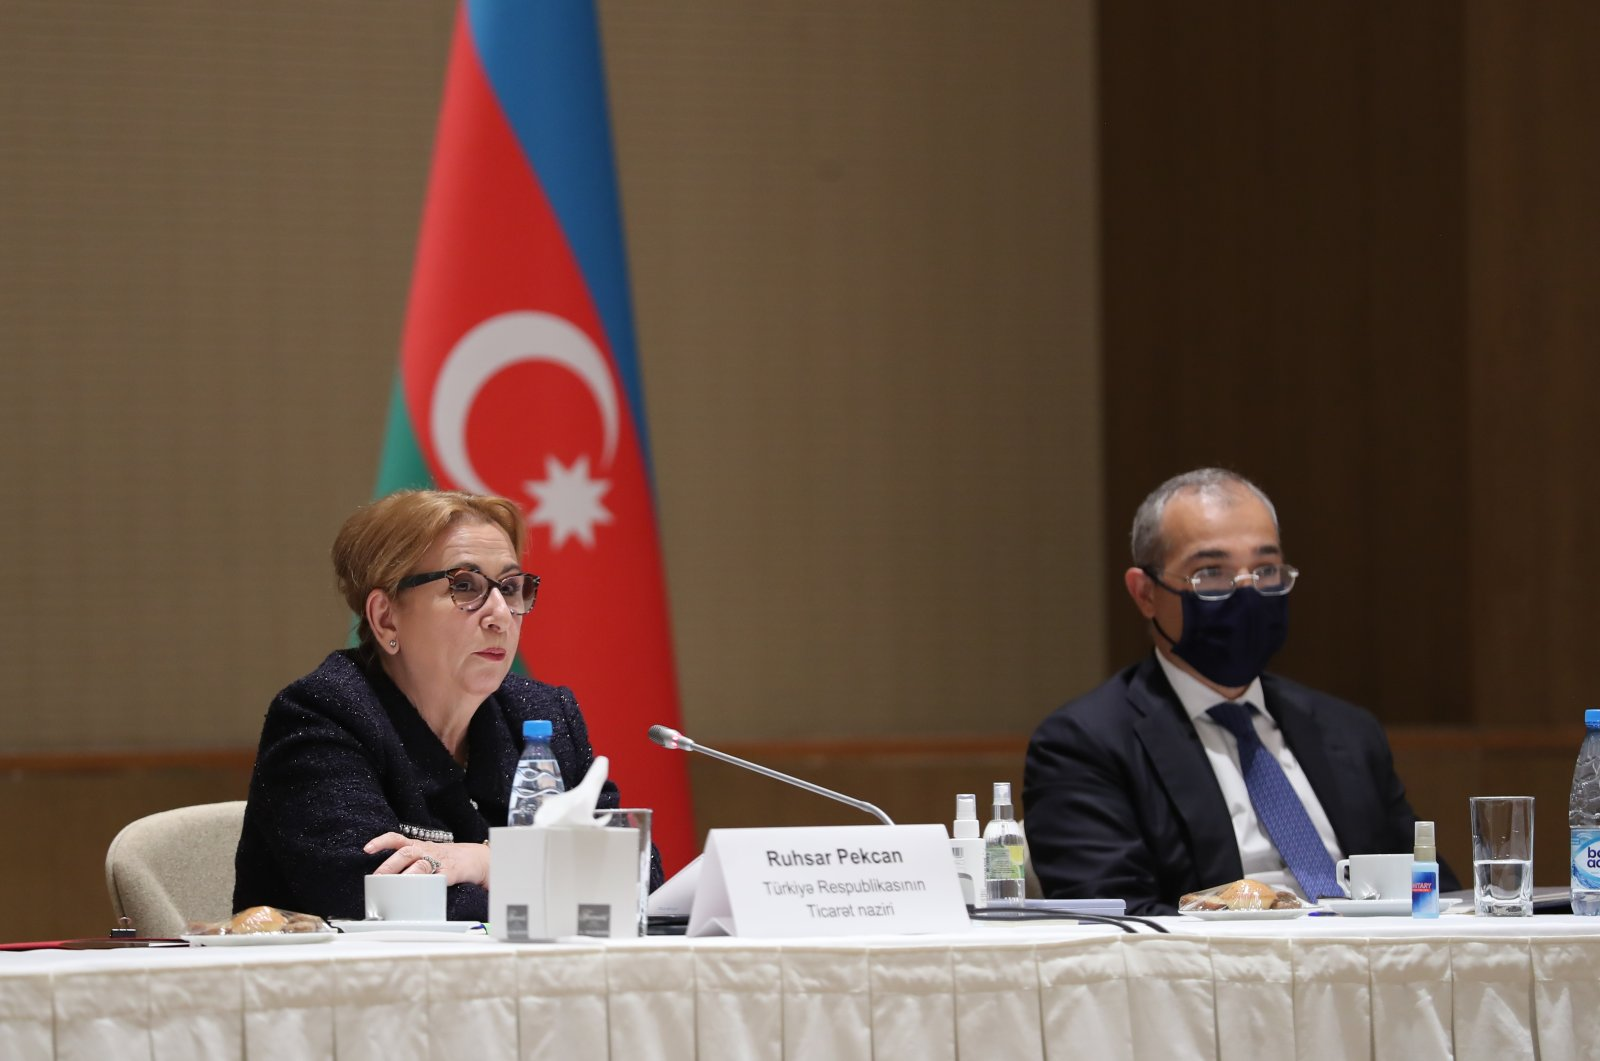 Turkey's Trade Minister Ruhsar Pekcan (L) and Azerbaijan's Economy Minister Mikayıl Cabbarov during a roundtable meeting with nongovernmental organizations (NGO) in Baku, Azerbaijan, April 2, 2021. (AA Photo)